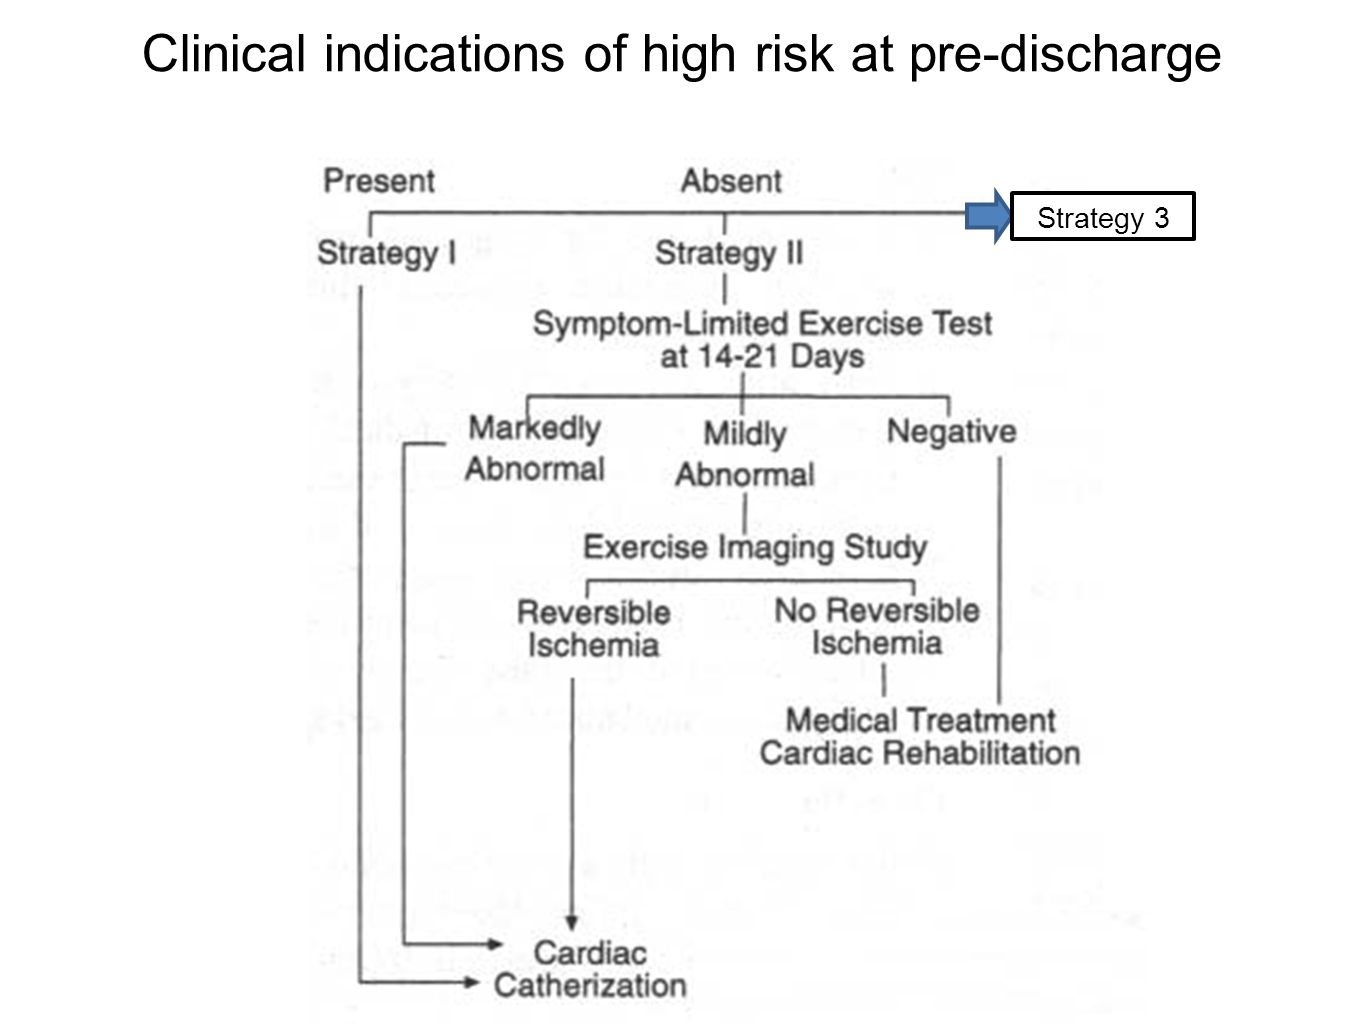 Clinical indications of high risk at pre-discharge